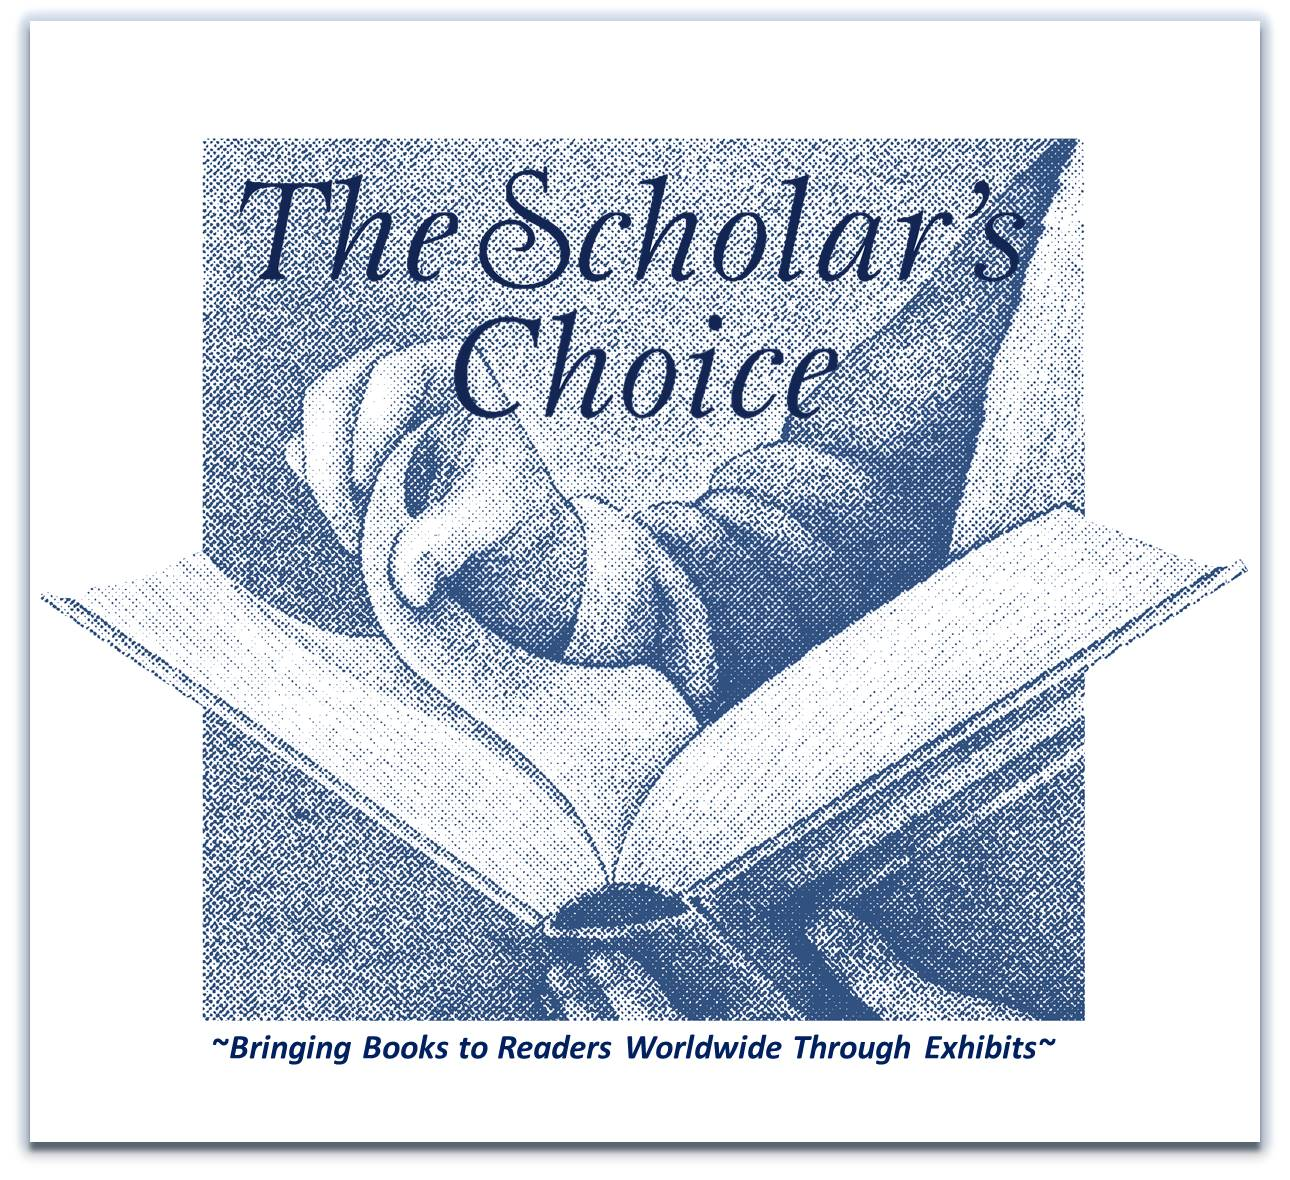 Scholars Choice logo